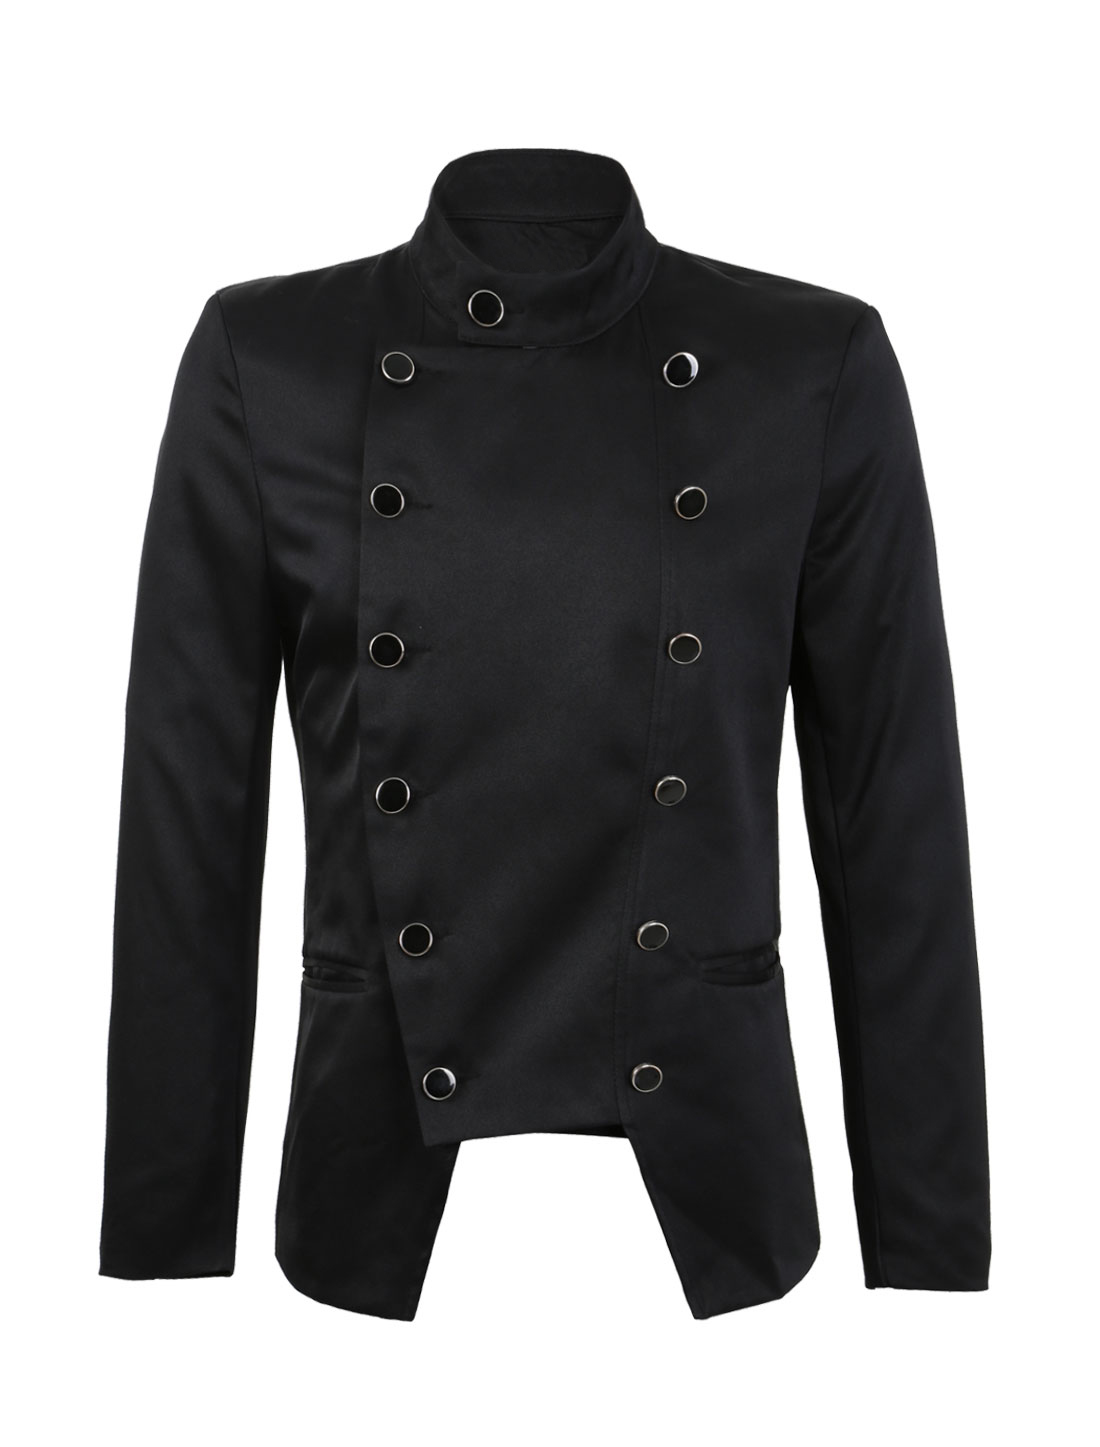 Men Convertible Collar Long Sleeve Stylish Blazer Black M